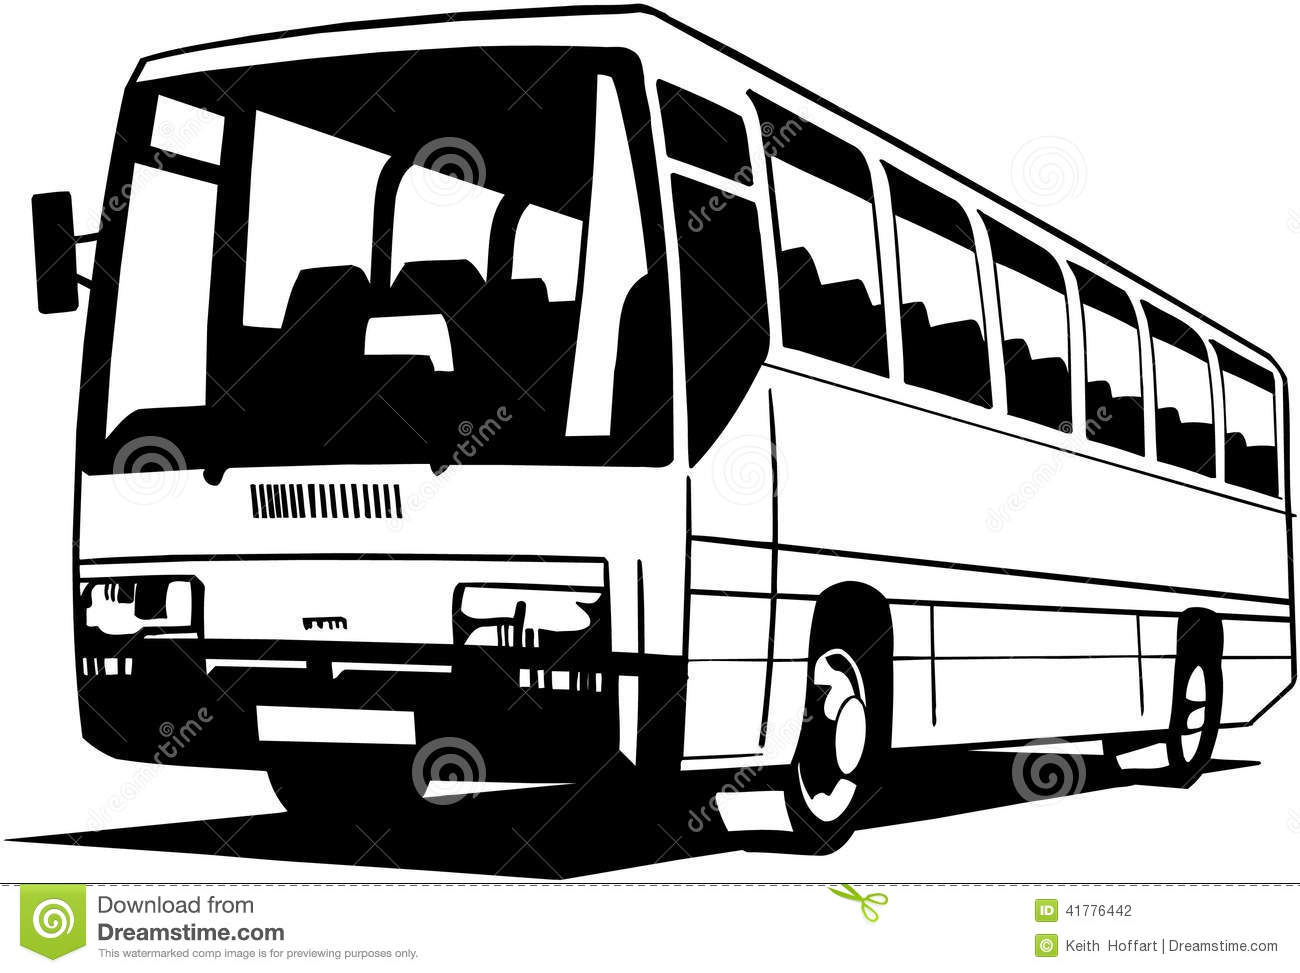 City bus clipart black and white » Clipart Station.